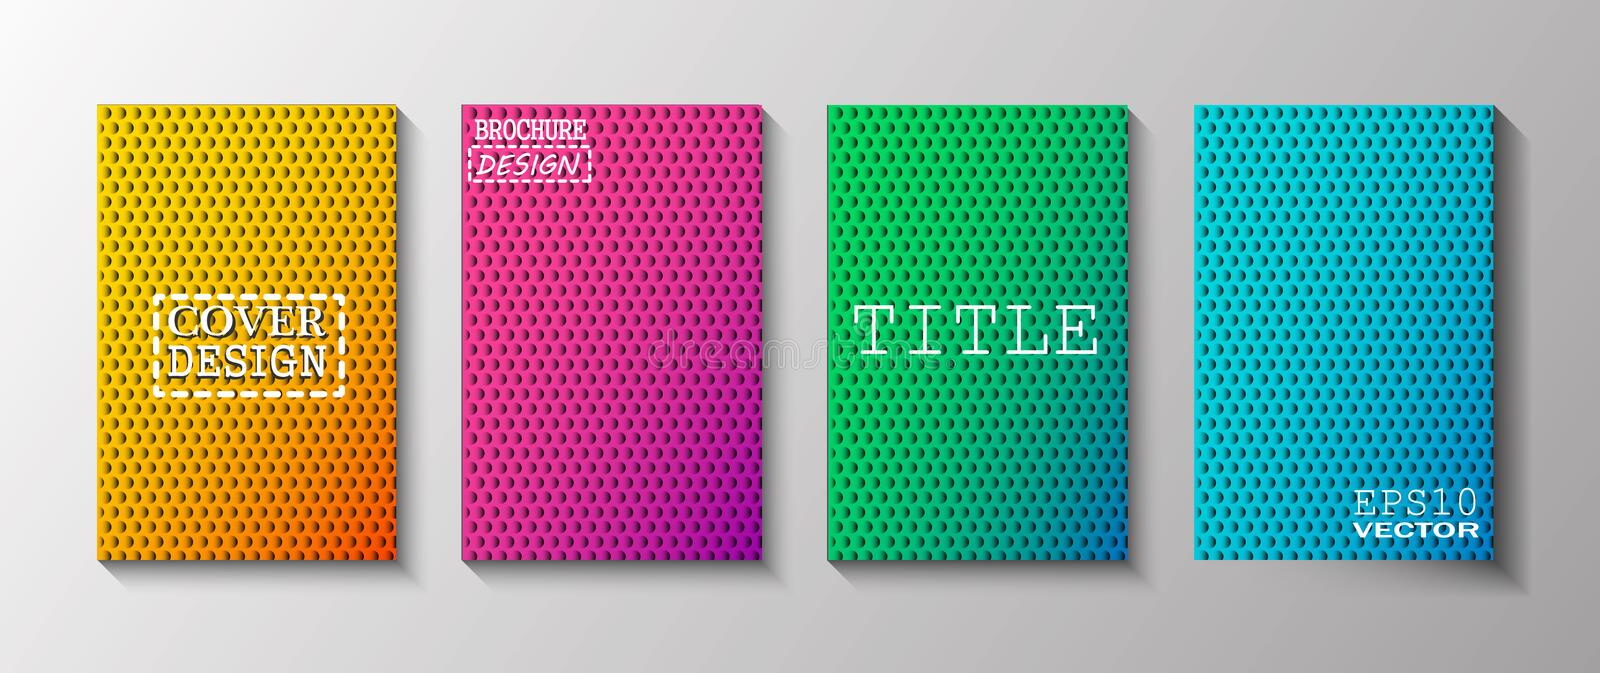 Colorful covers design. Minimal geometric pattern gradients. Eps10 vector stock illustration